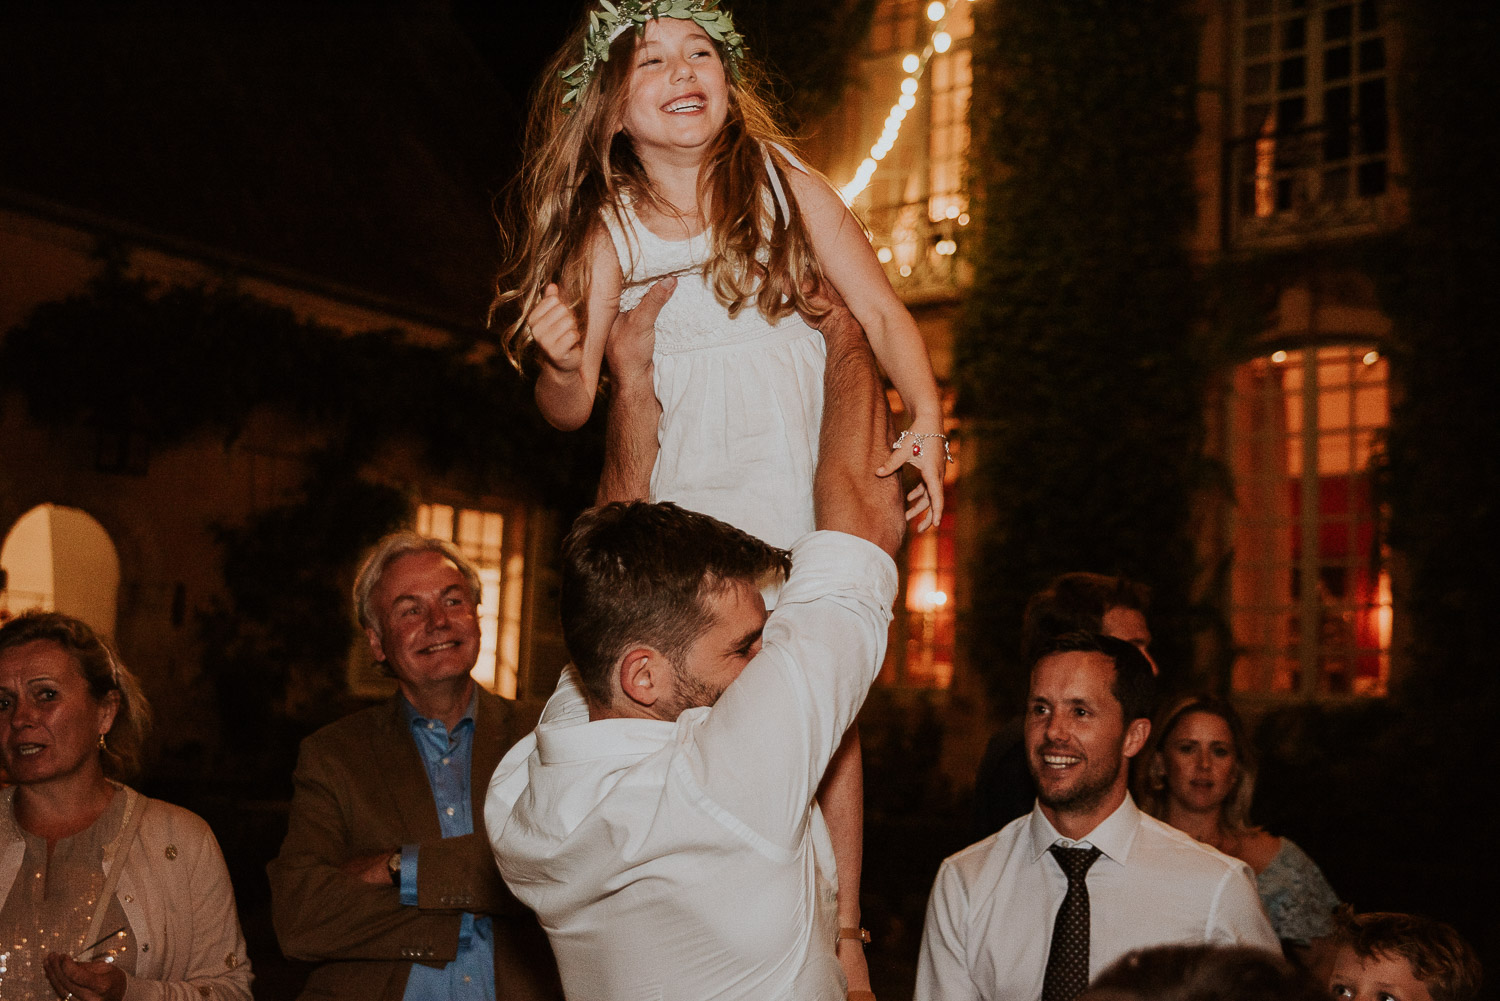 bergerac_wedding_katy_webb_photography_france_UK177